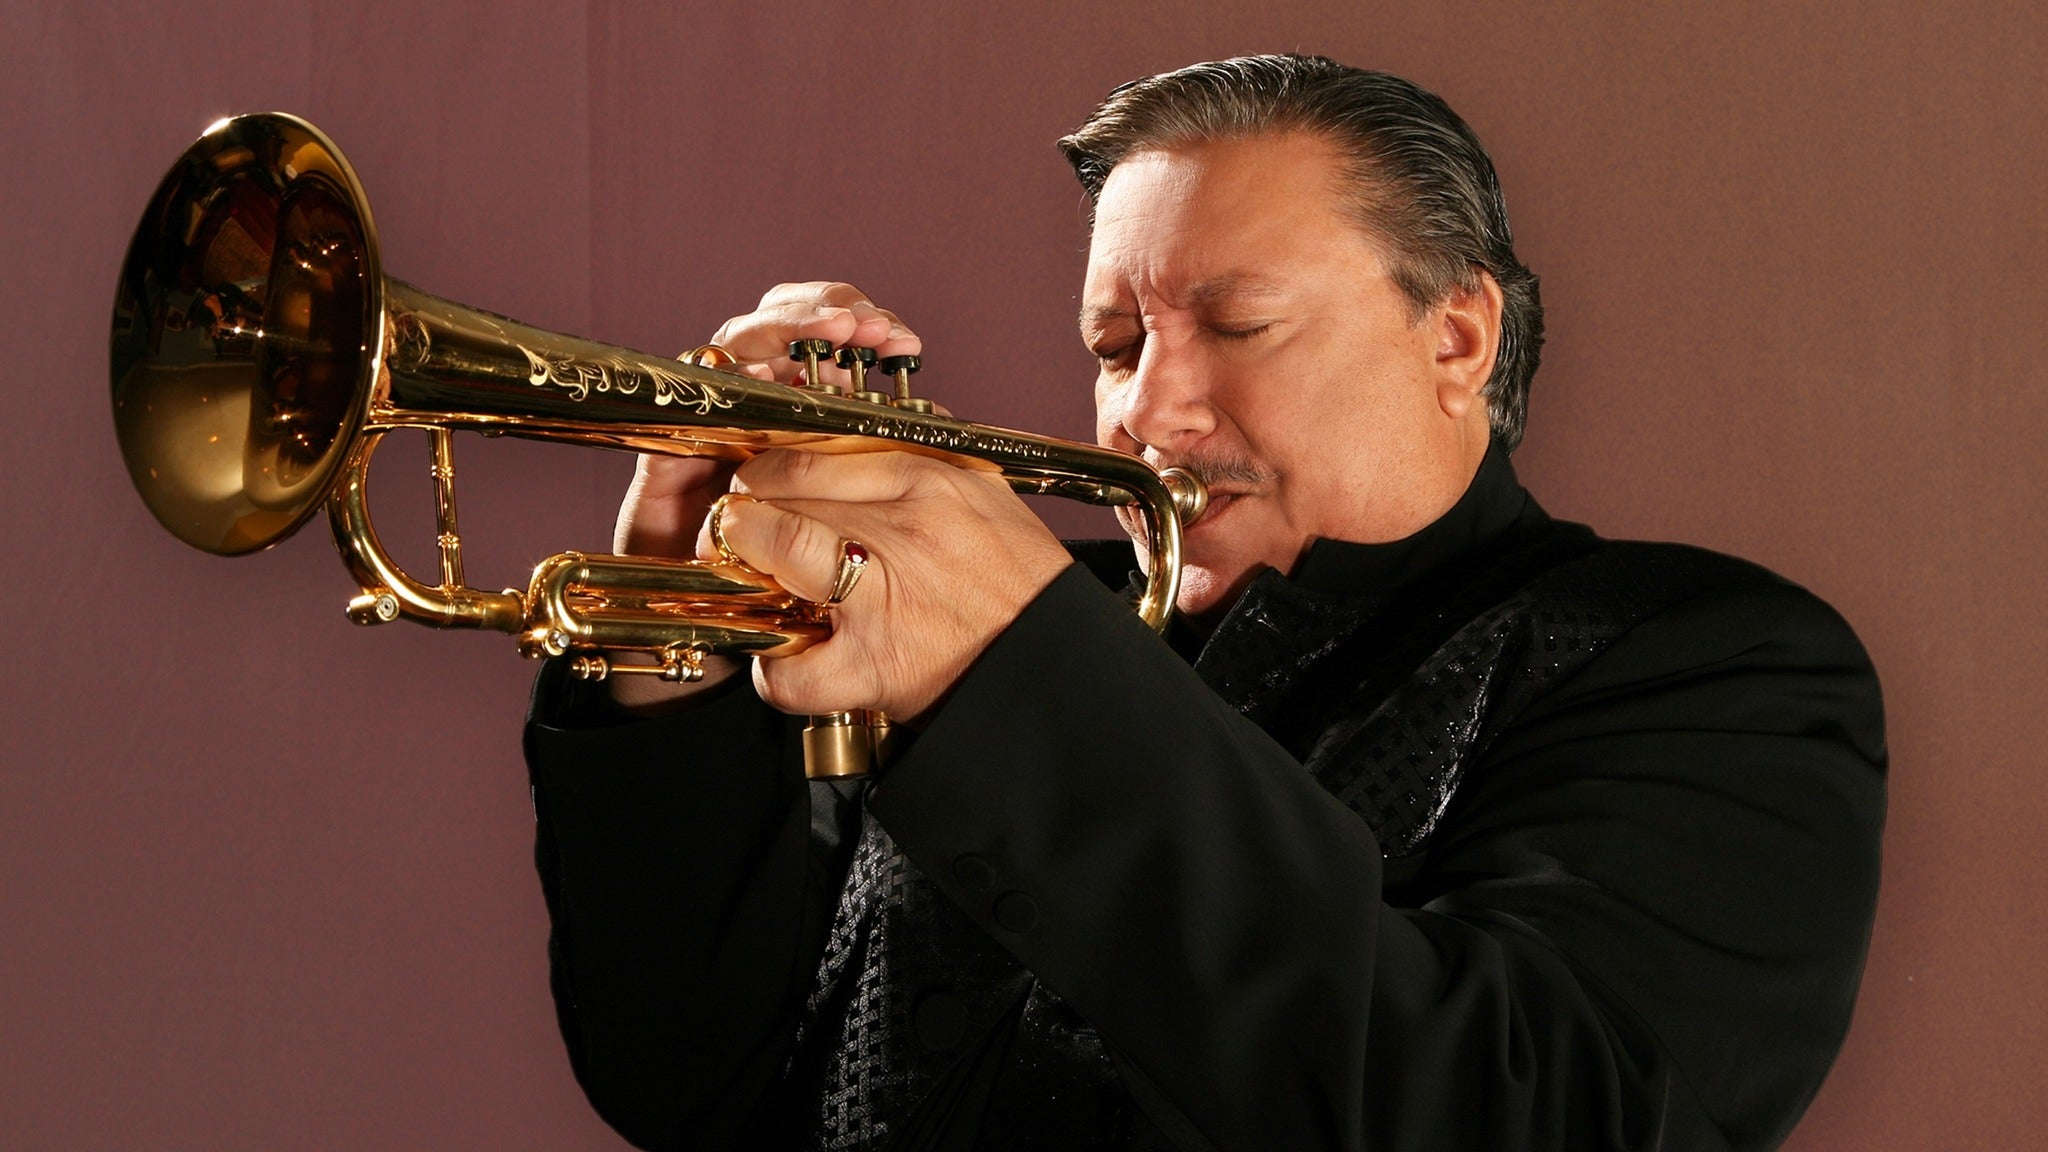 Arturo Sandoval at One World Theatre